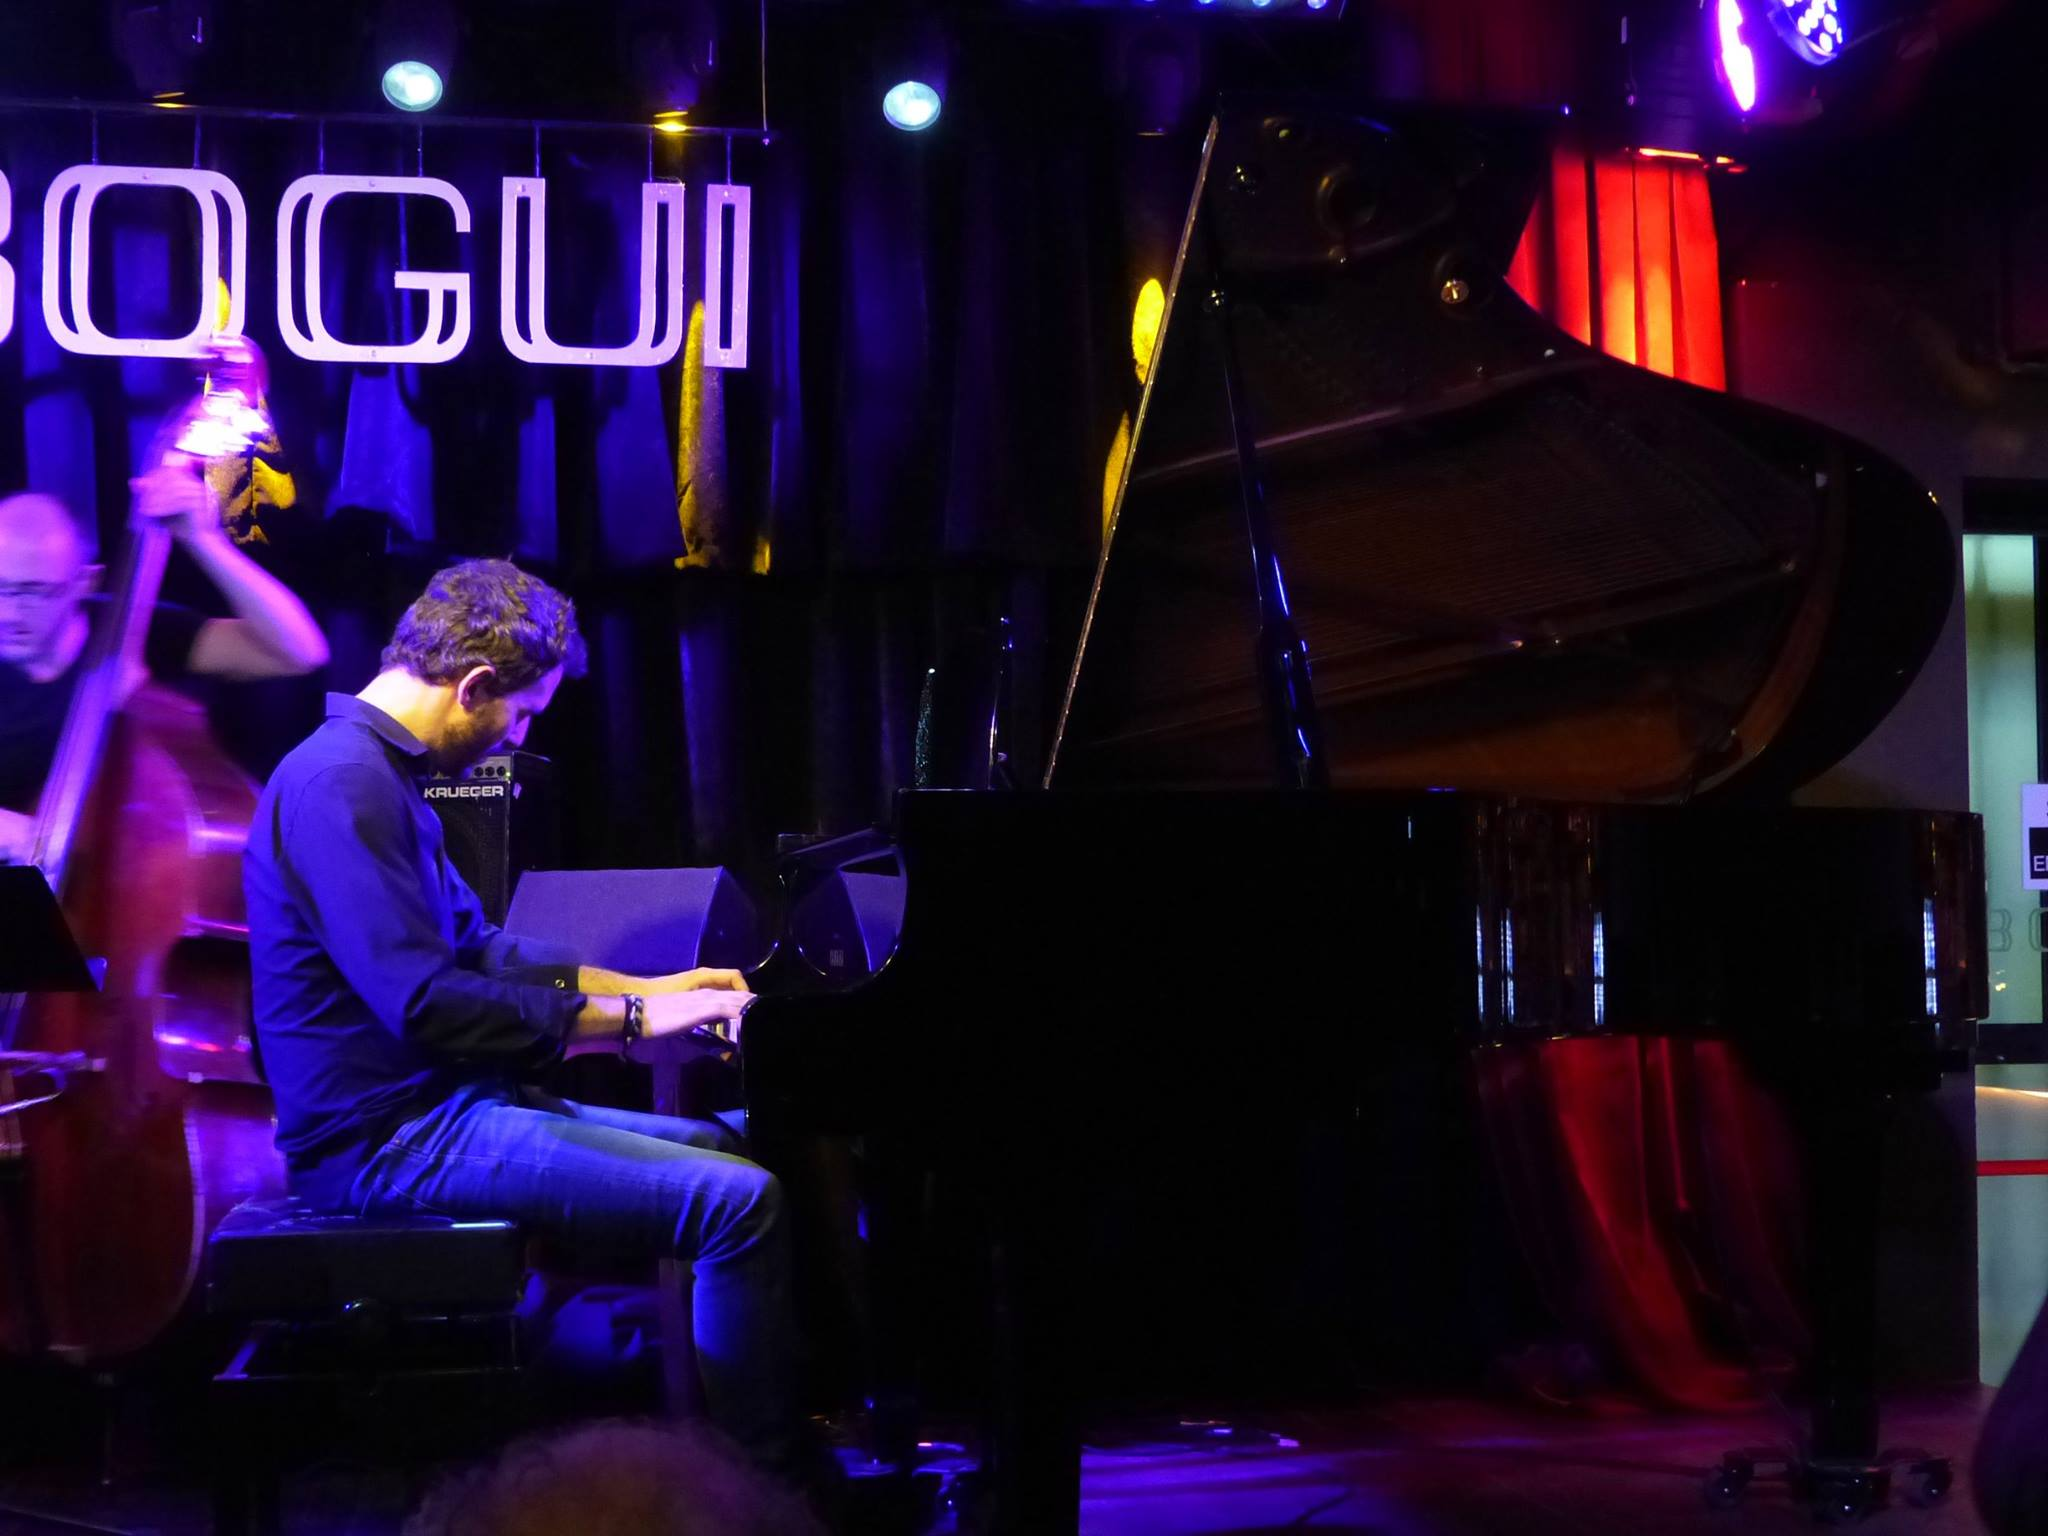 M.R Trio Bogui Jazz (Madrid) Nov'17